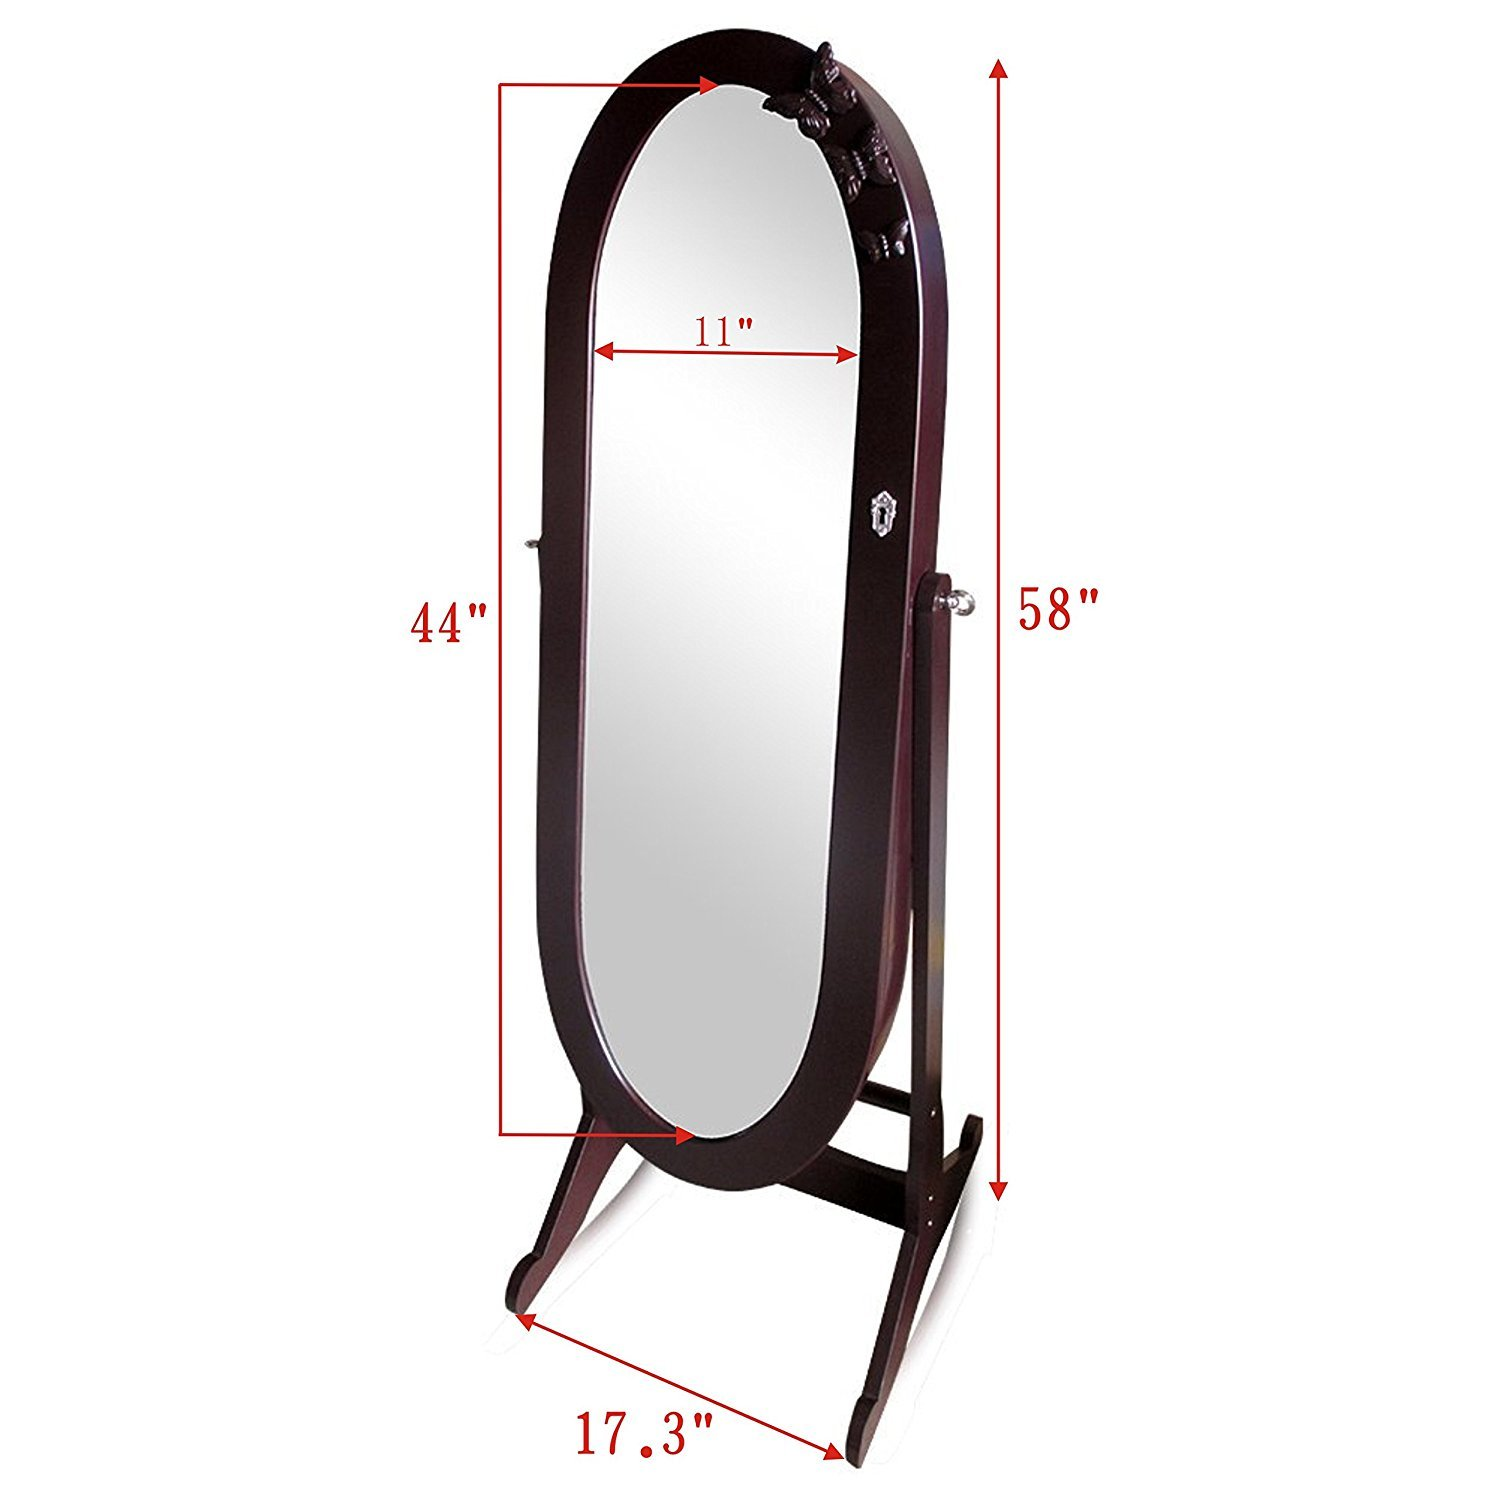 Organizedlife Brown Luxury Full Length Adjustable Mirror Oval Jewelry Armoire Cabinet with Drawers by Organizedlife (Image #7)